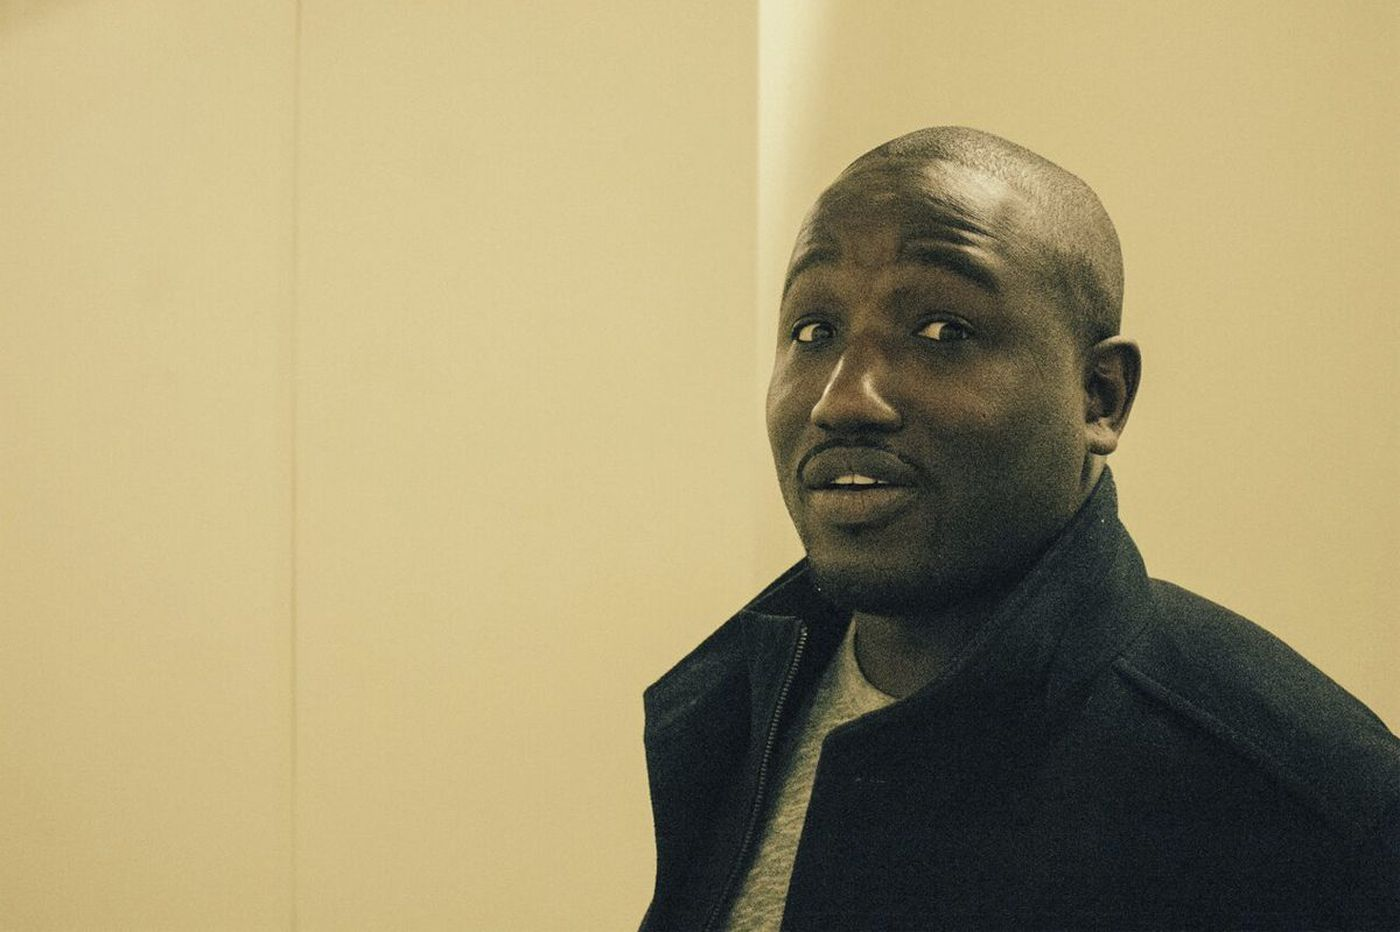 Ahead of Philly show, Hannibal Buress has no comment on Cosby verdict